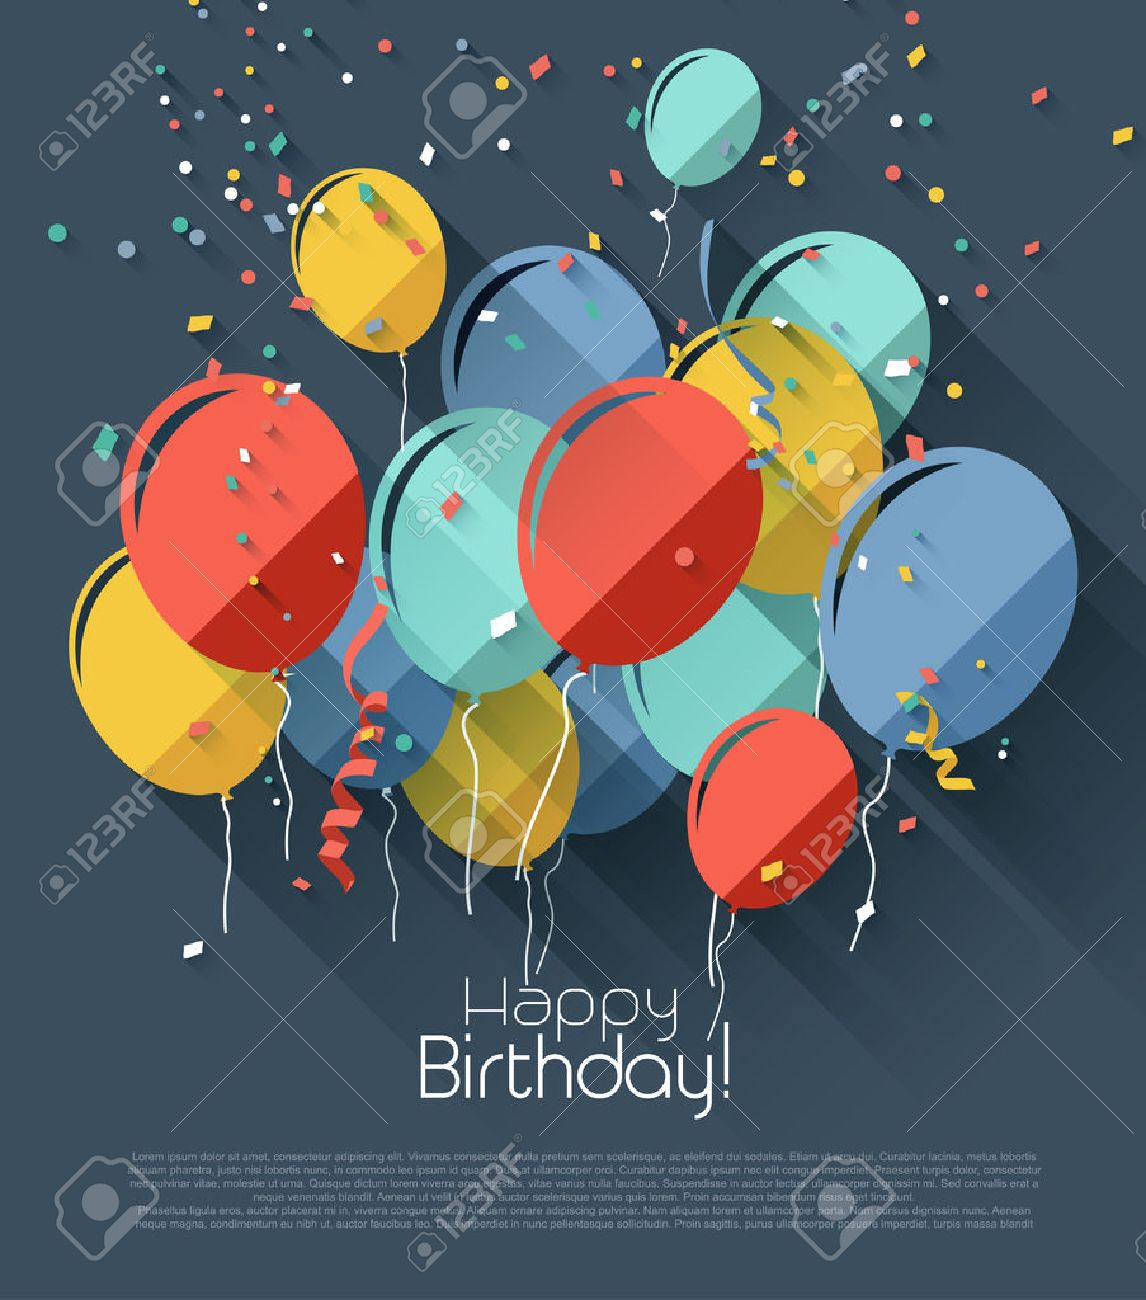 Birthday Greeting Card With Colorful Balloons Flat Design Style – Images of Birthday Greeting